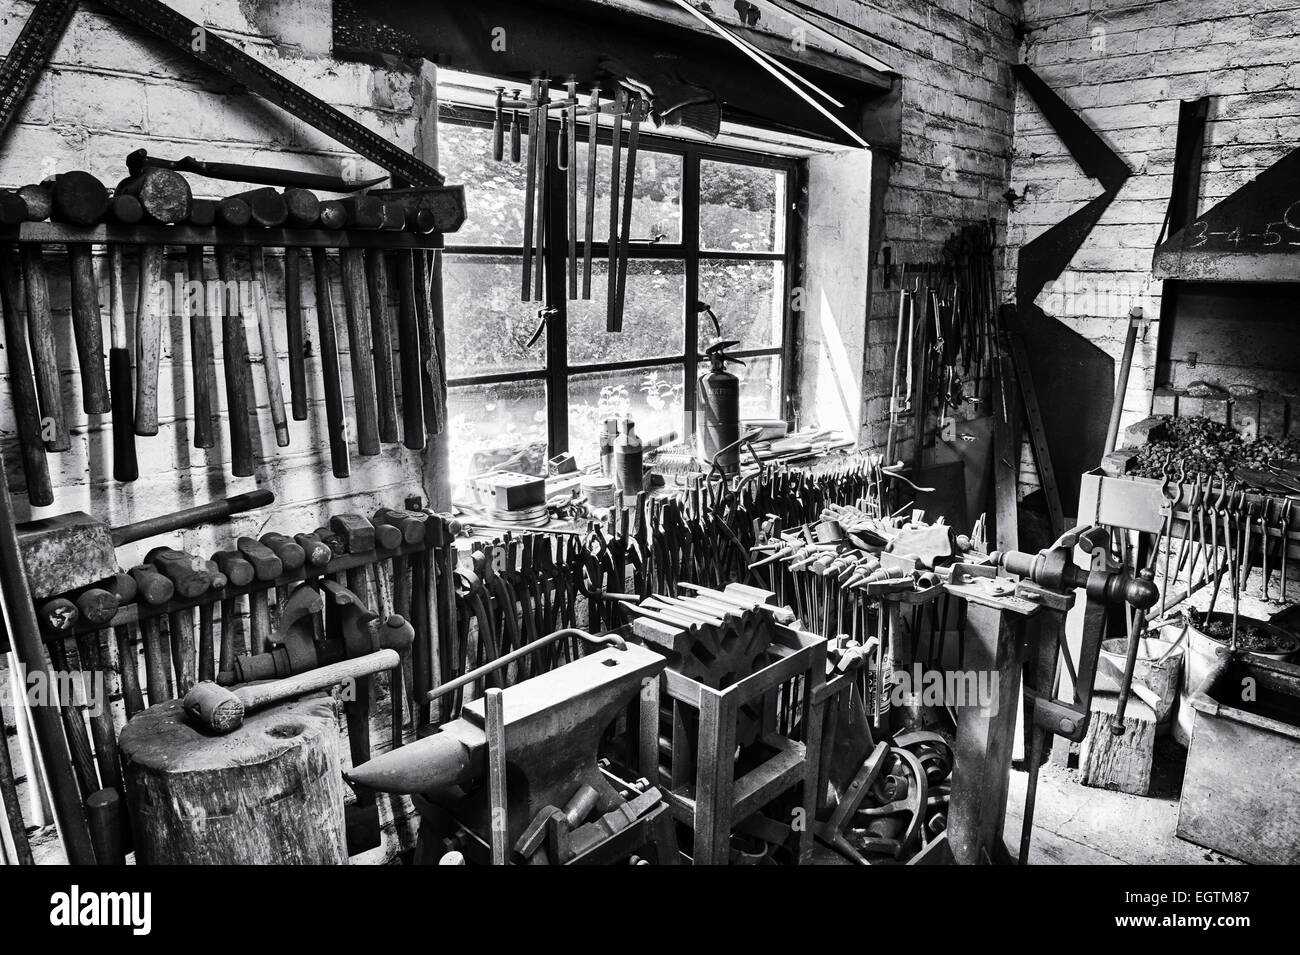 Blacksmiths workshop. Stoke Bruerne, Northamptonshire, England. Monochrome - Stock Image